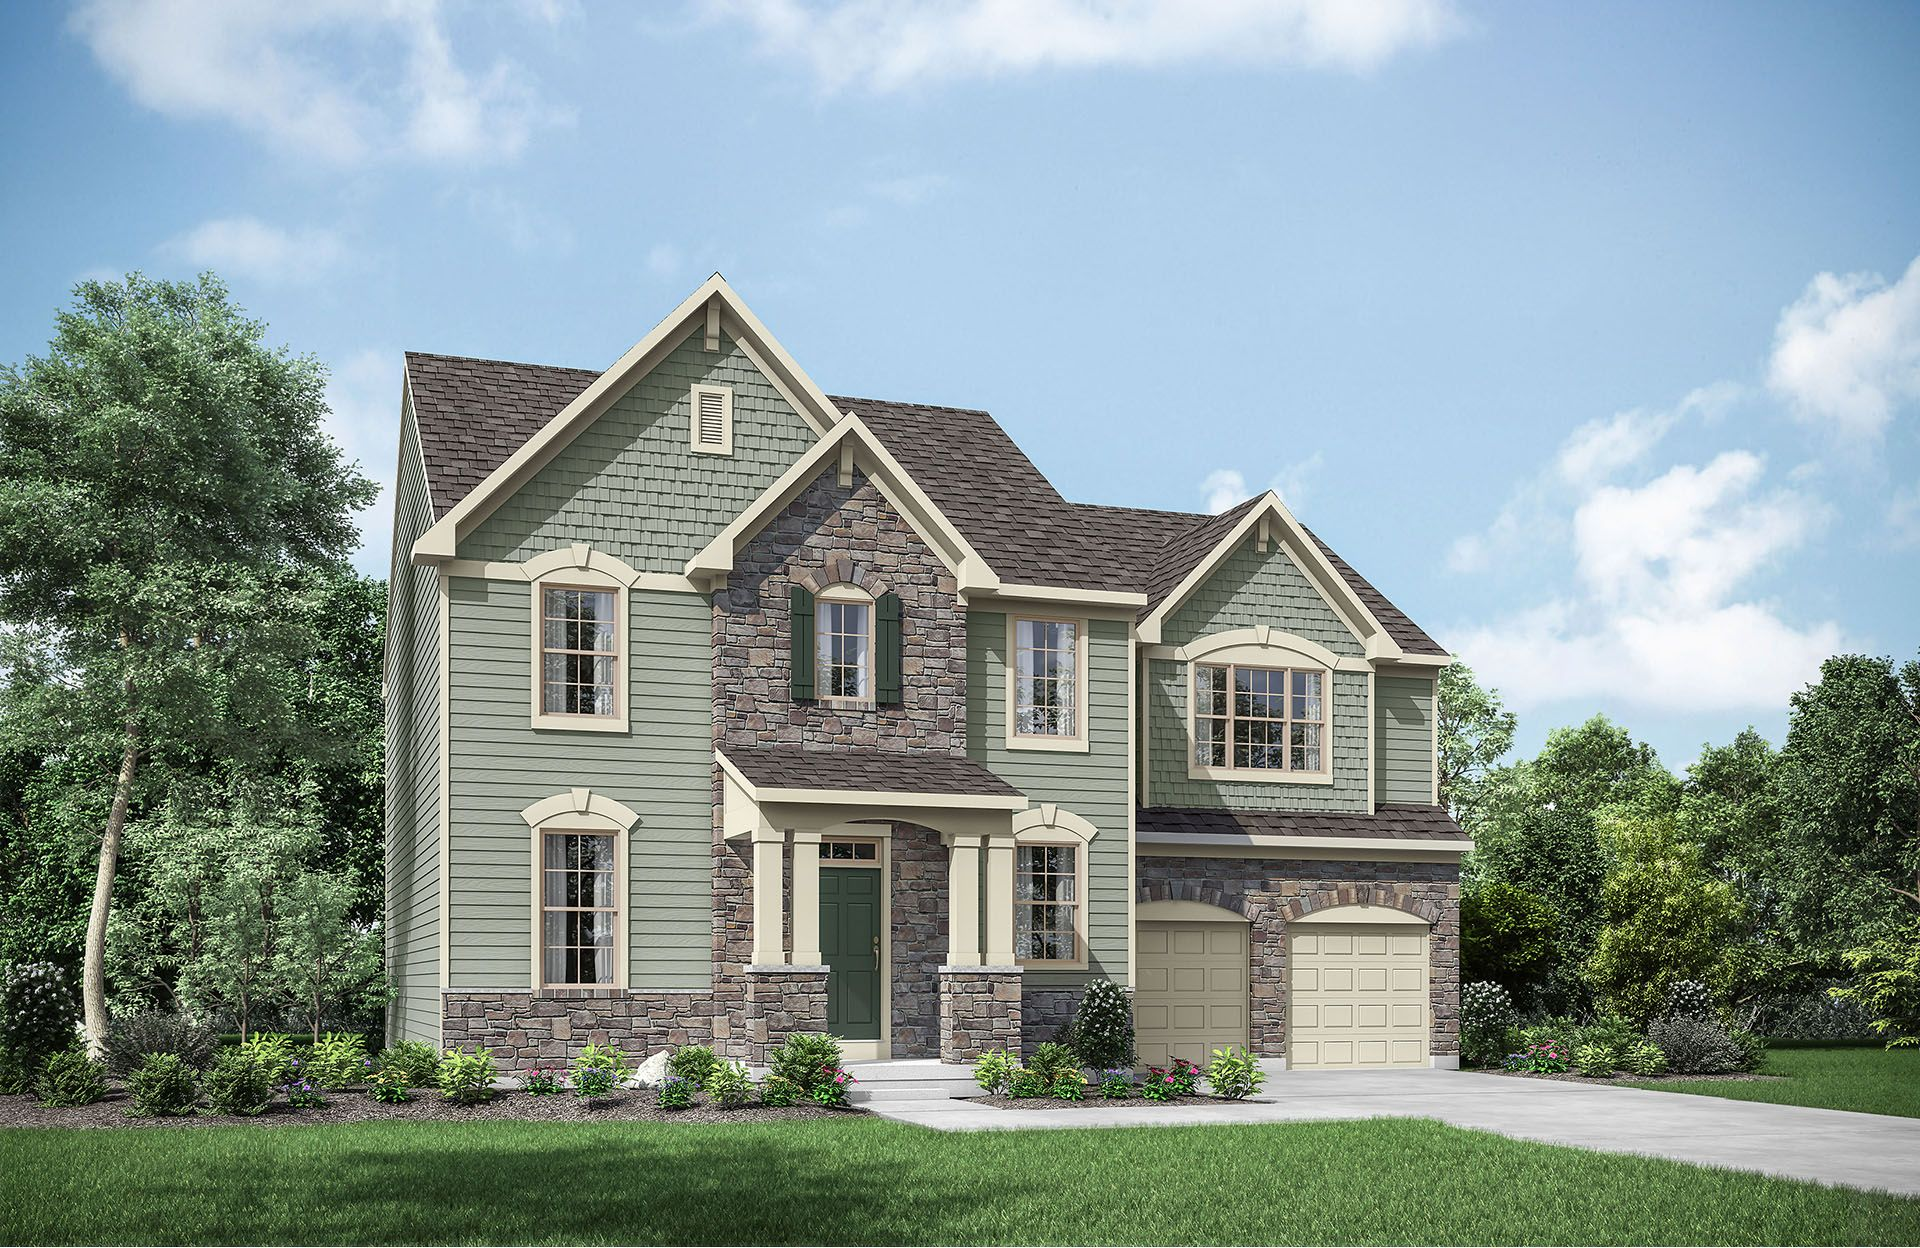 Single Family for Active at Tallyn Ridge Estates - Ainsley 8395 Pine Bluff Road Frederick, Maryland 21704 United States